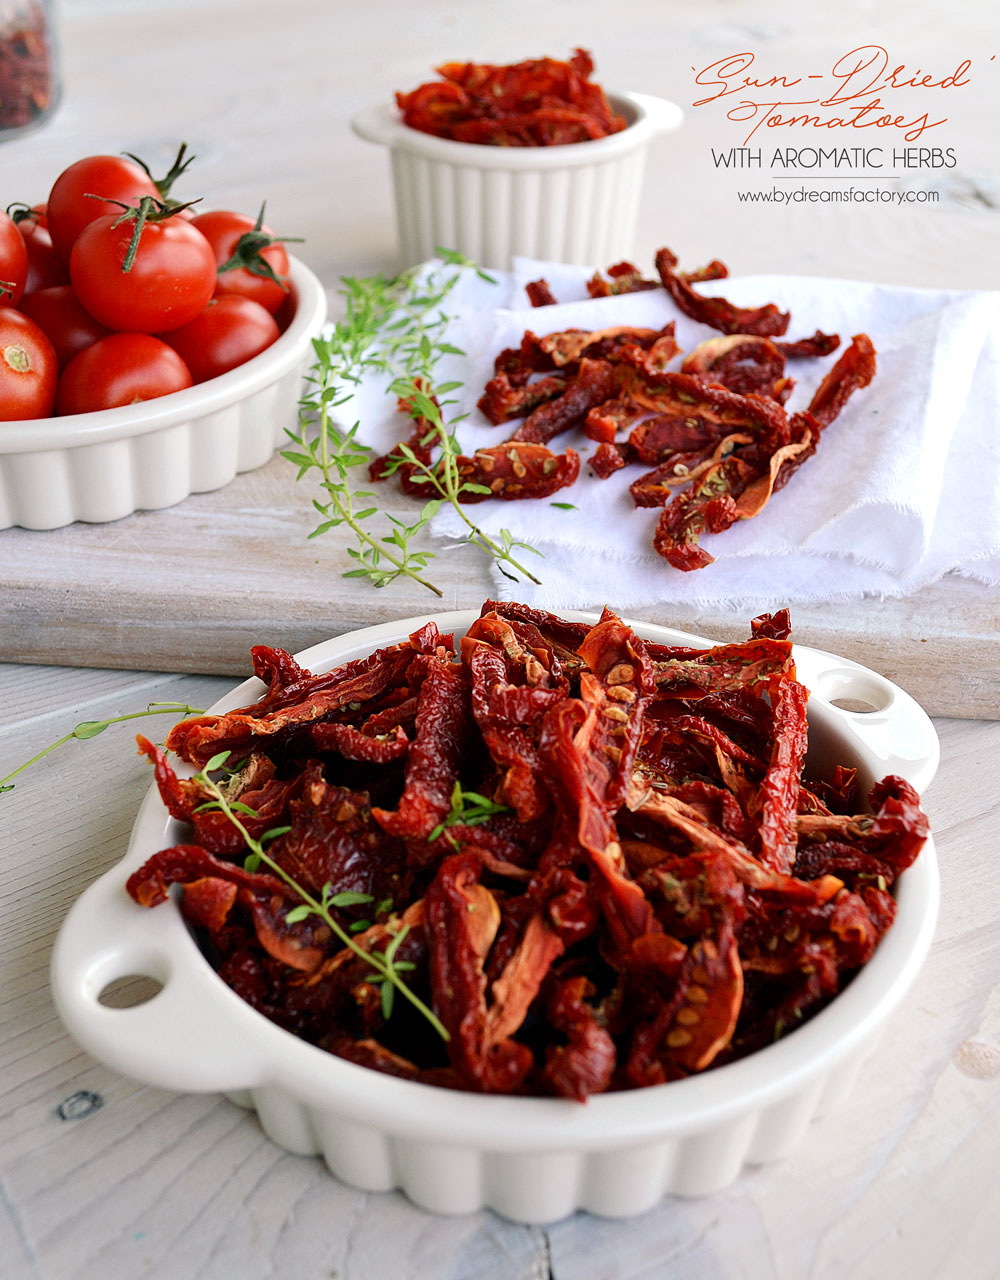 picture DIY Sun-Dried Tomatoes